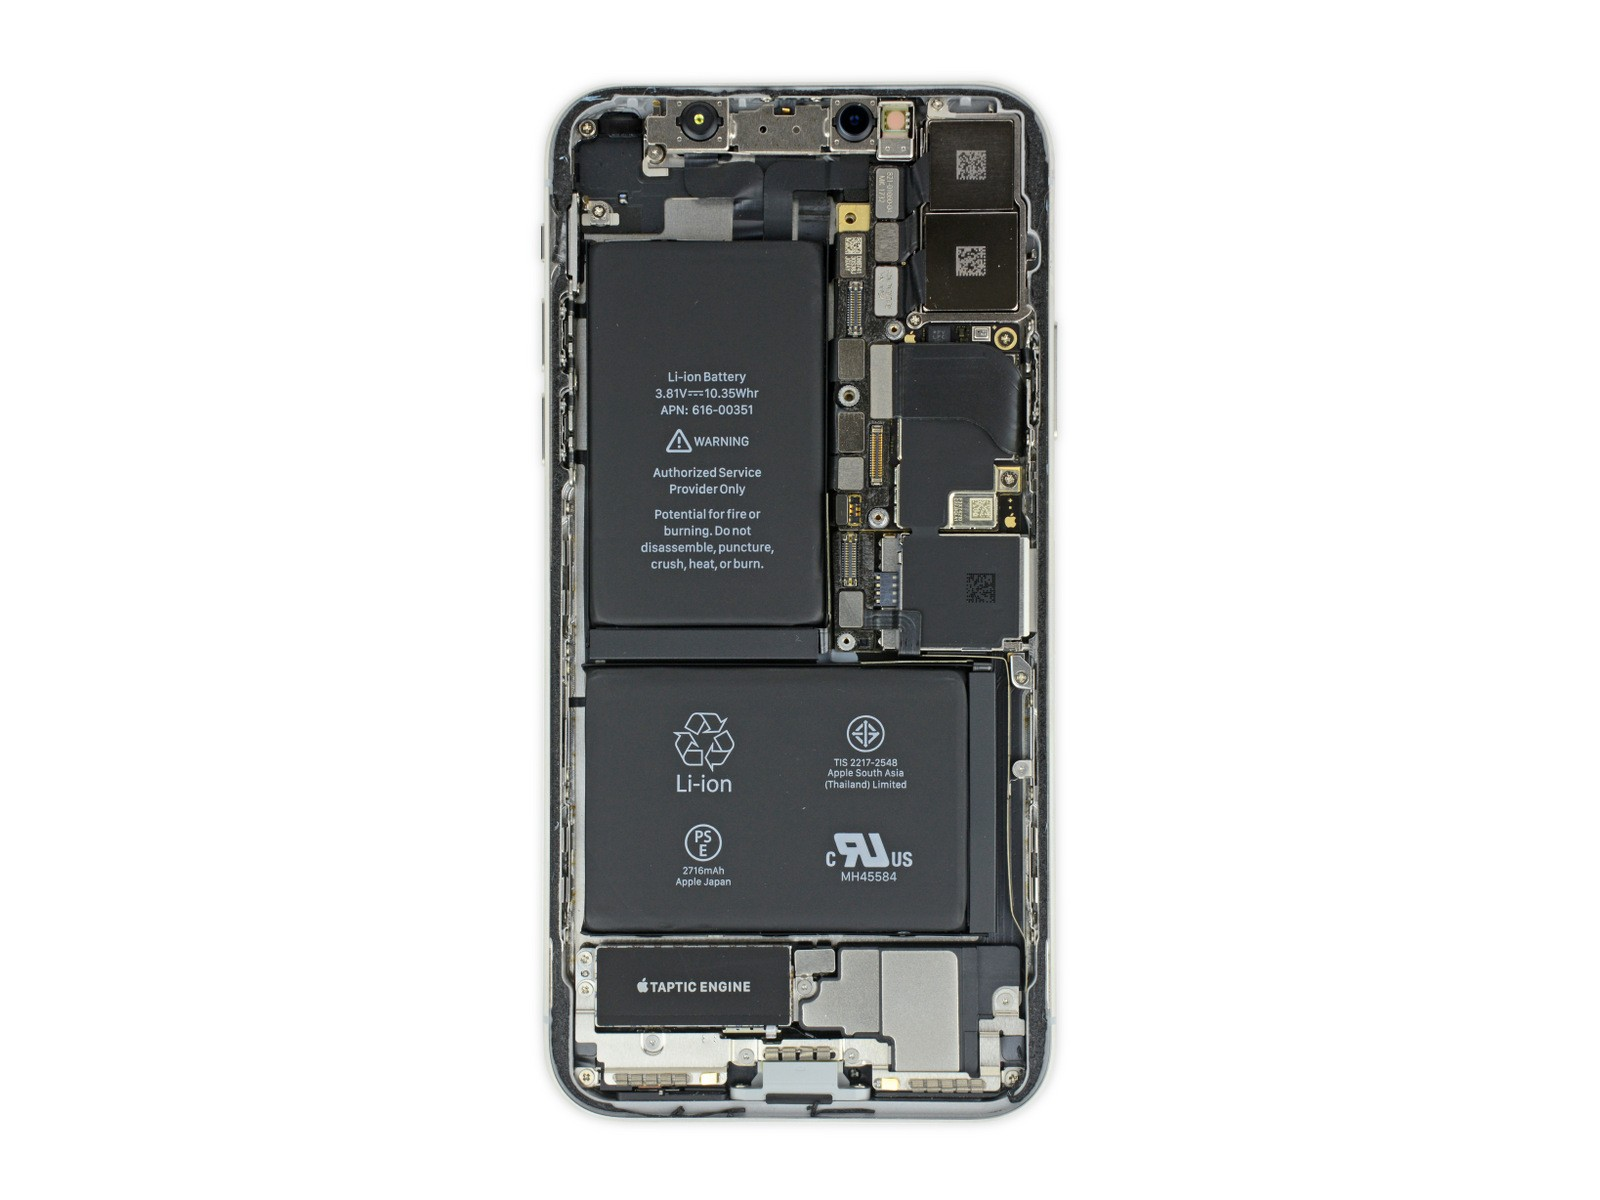 Ipad Retina Wallpaper For Iphone X 8 7 6: IFixit Teardown Reveals What's Inside The IPhone X